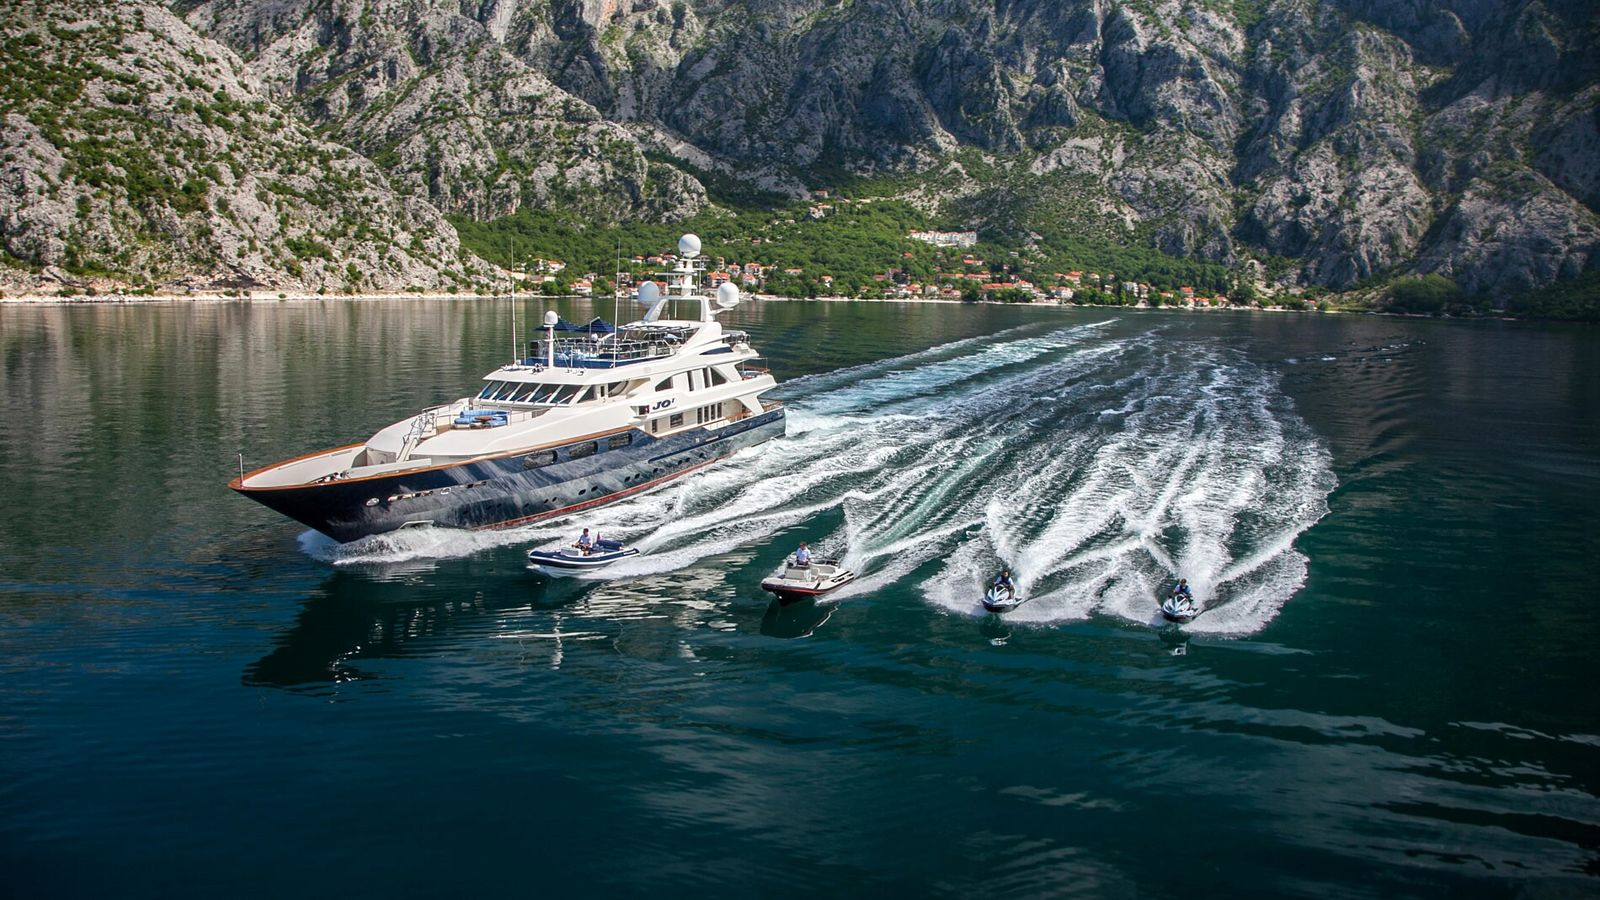 Built in 2004 by the renowned Benetti shipyard, JO I is a magnificent 50m motor yacht ...